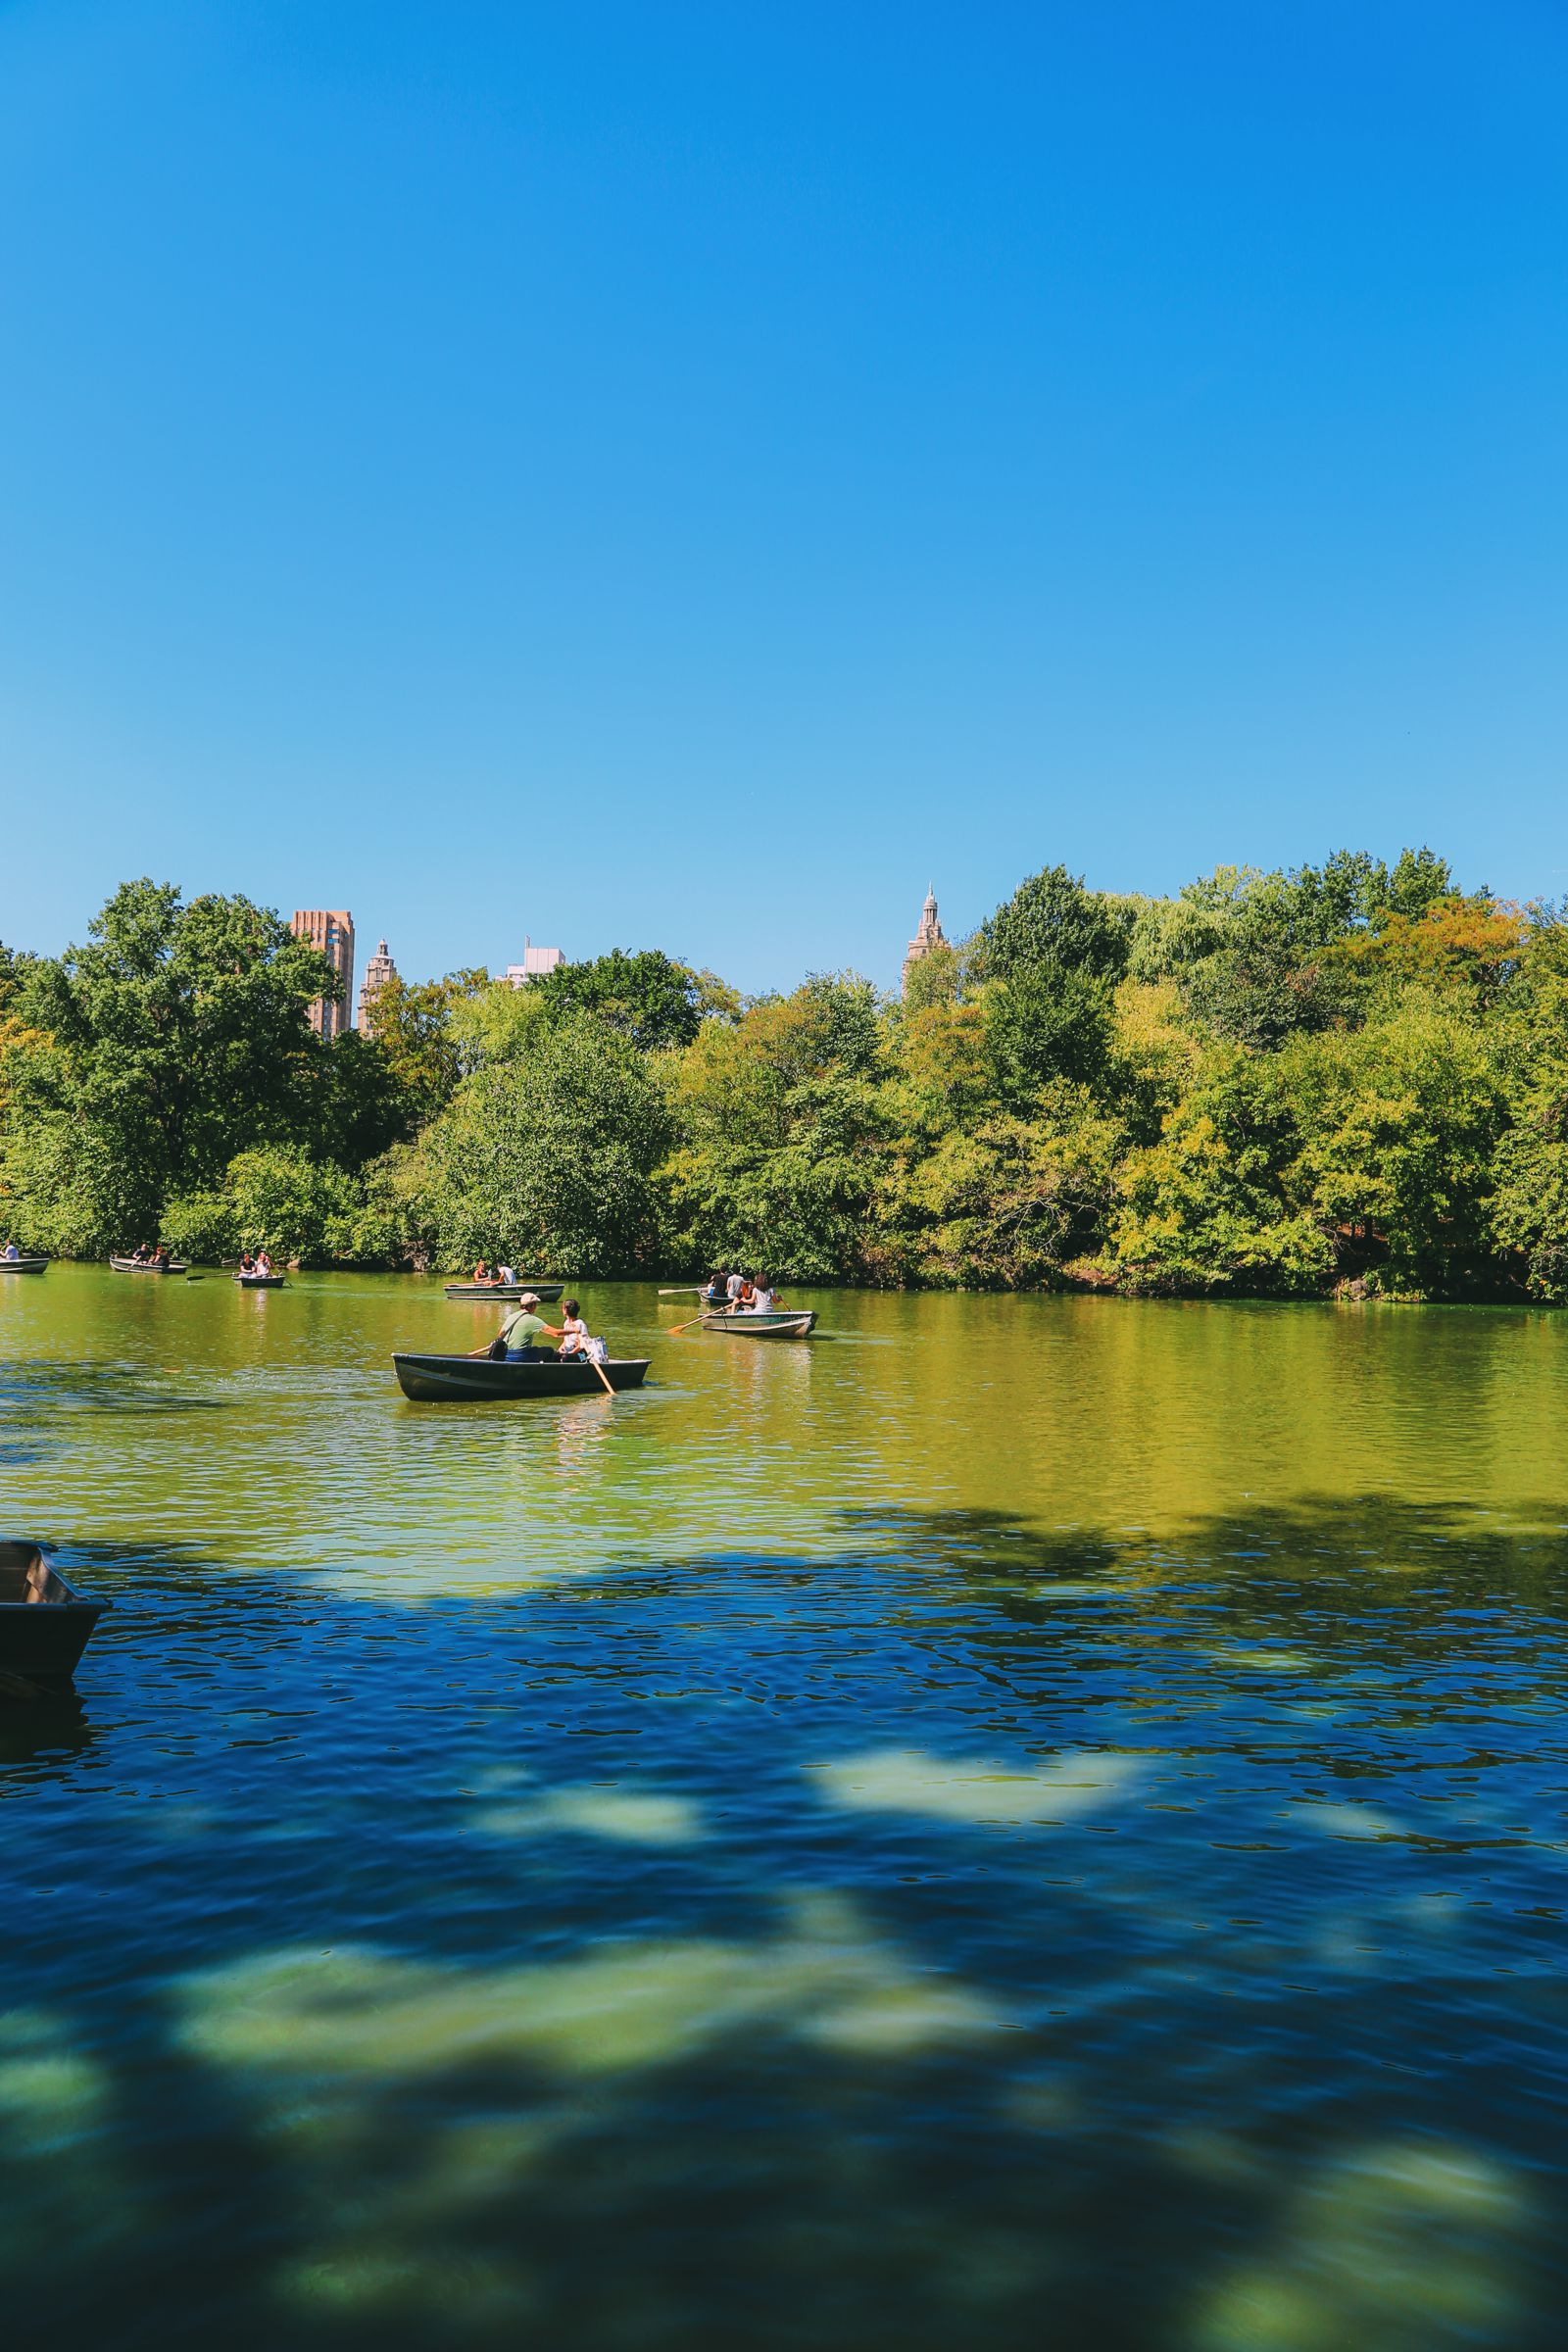 Boating at the Loeb Boathouse in Central Park, New York City (3)